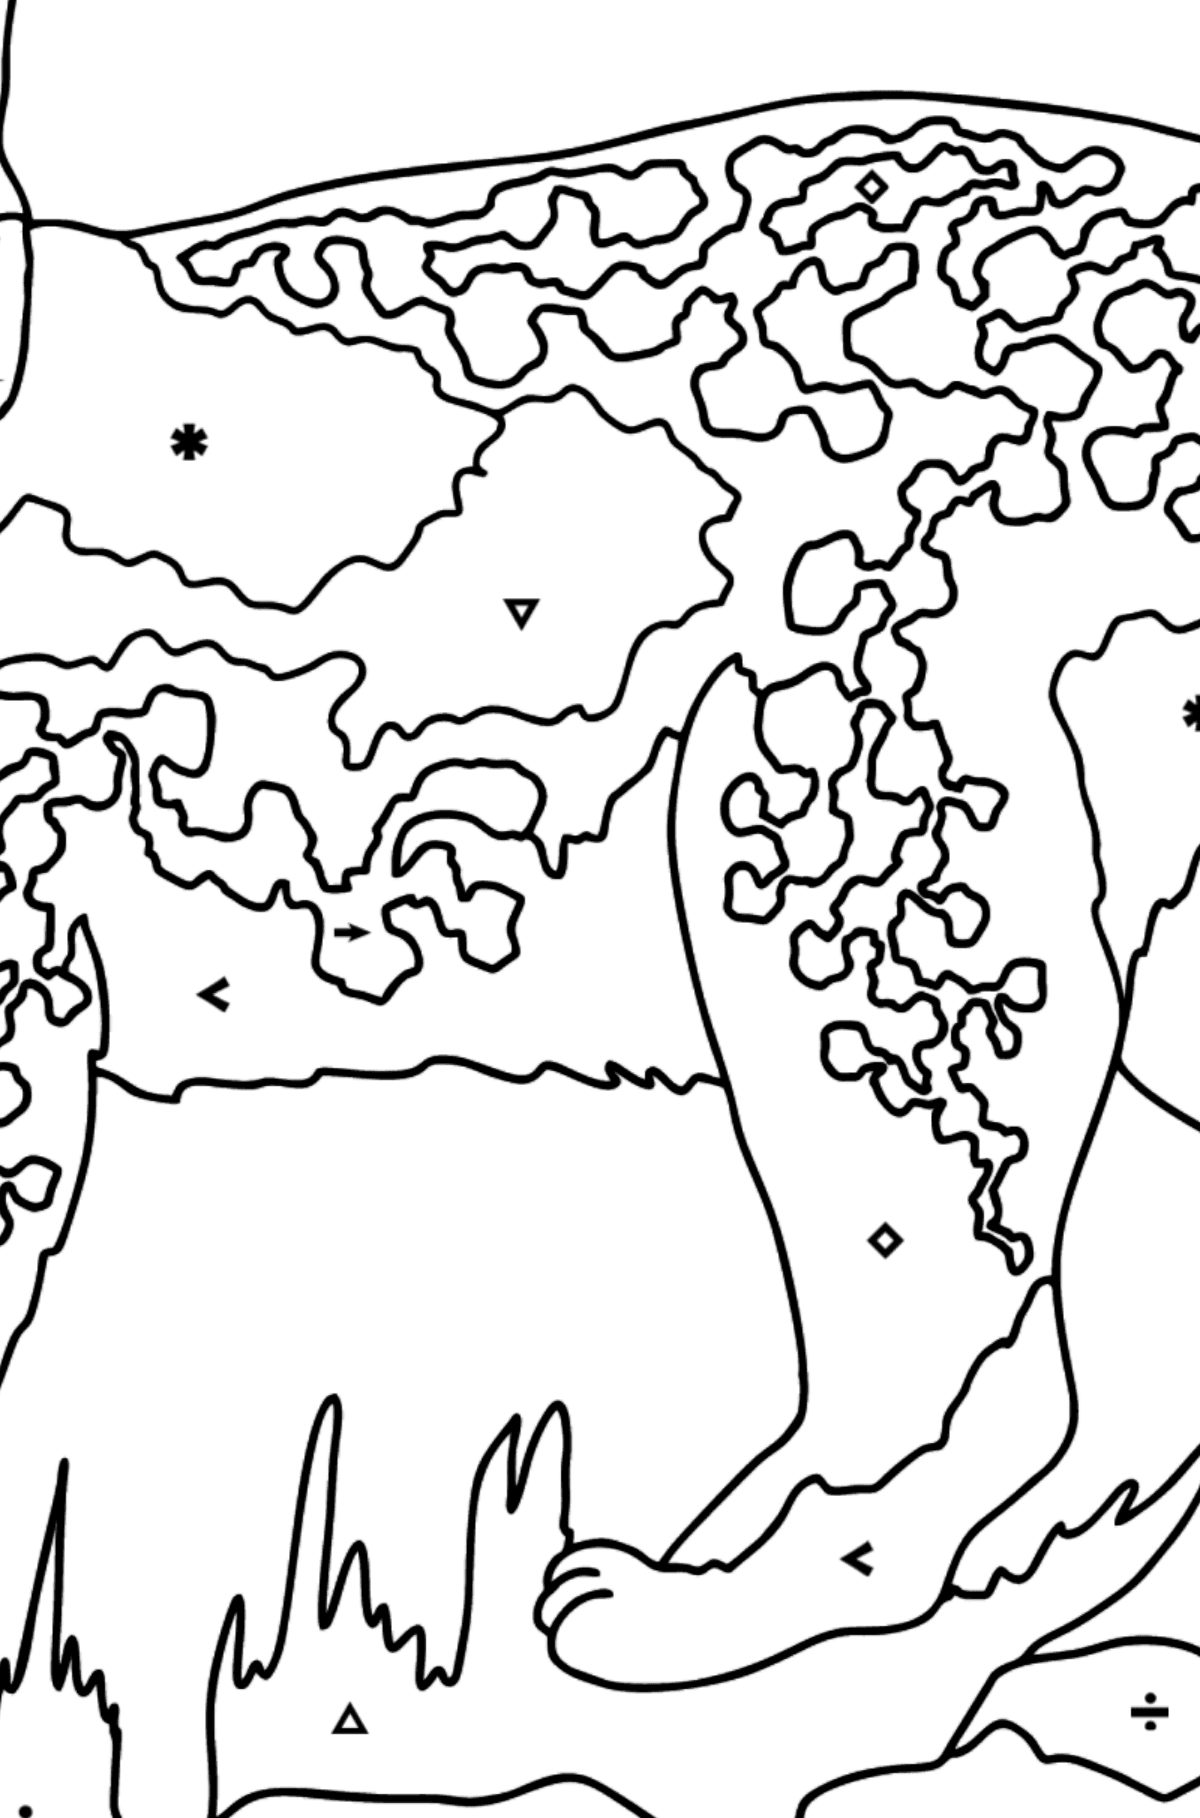 Coloring Page - A Lynx in the Forest - Coloring by Symbols for Kids